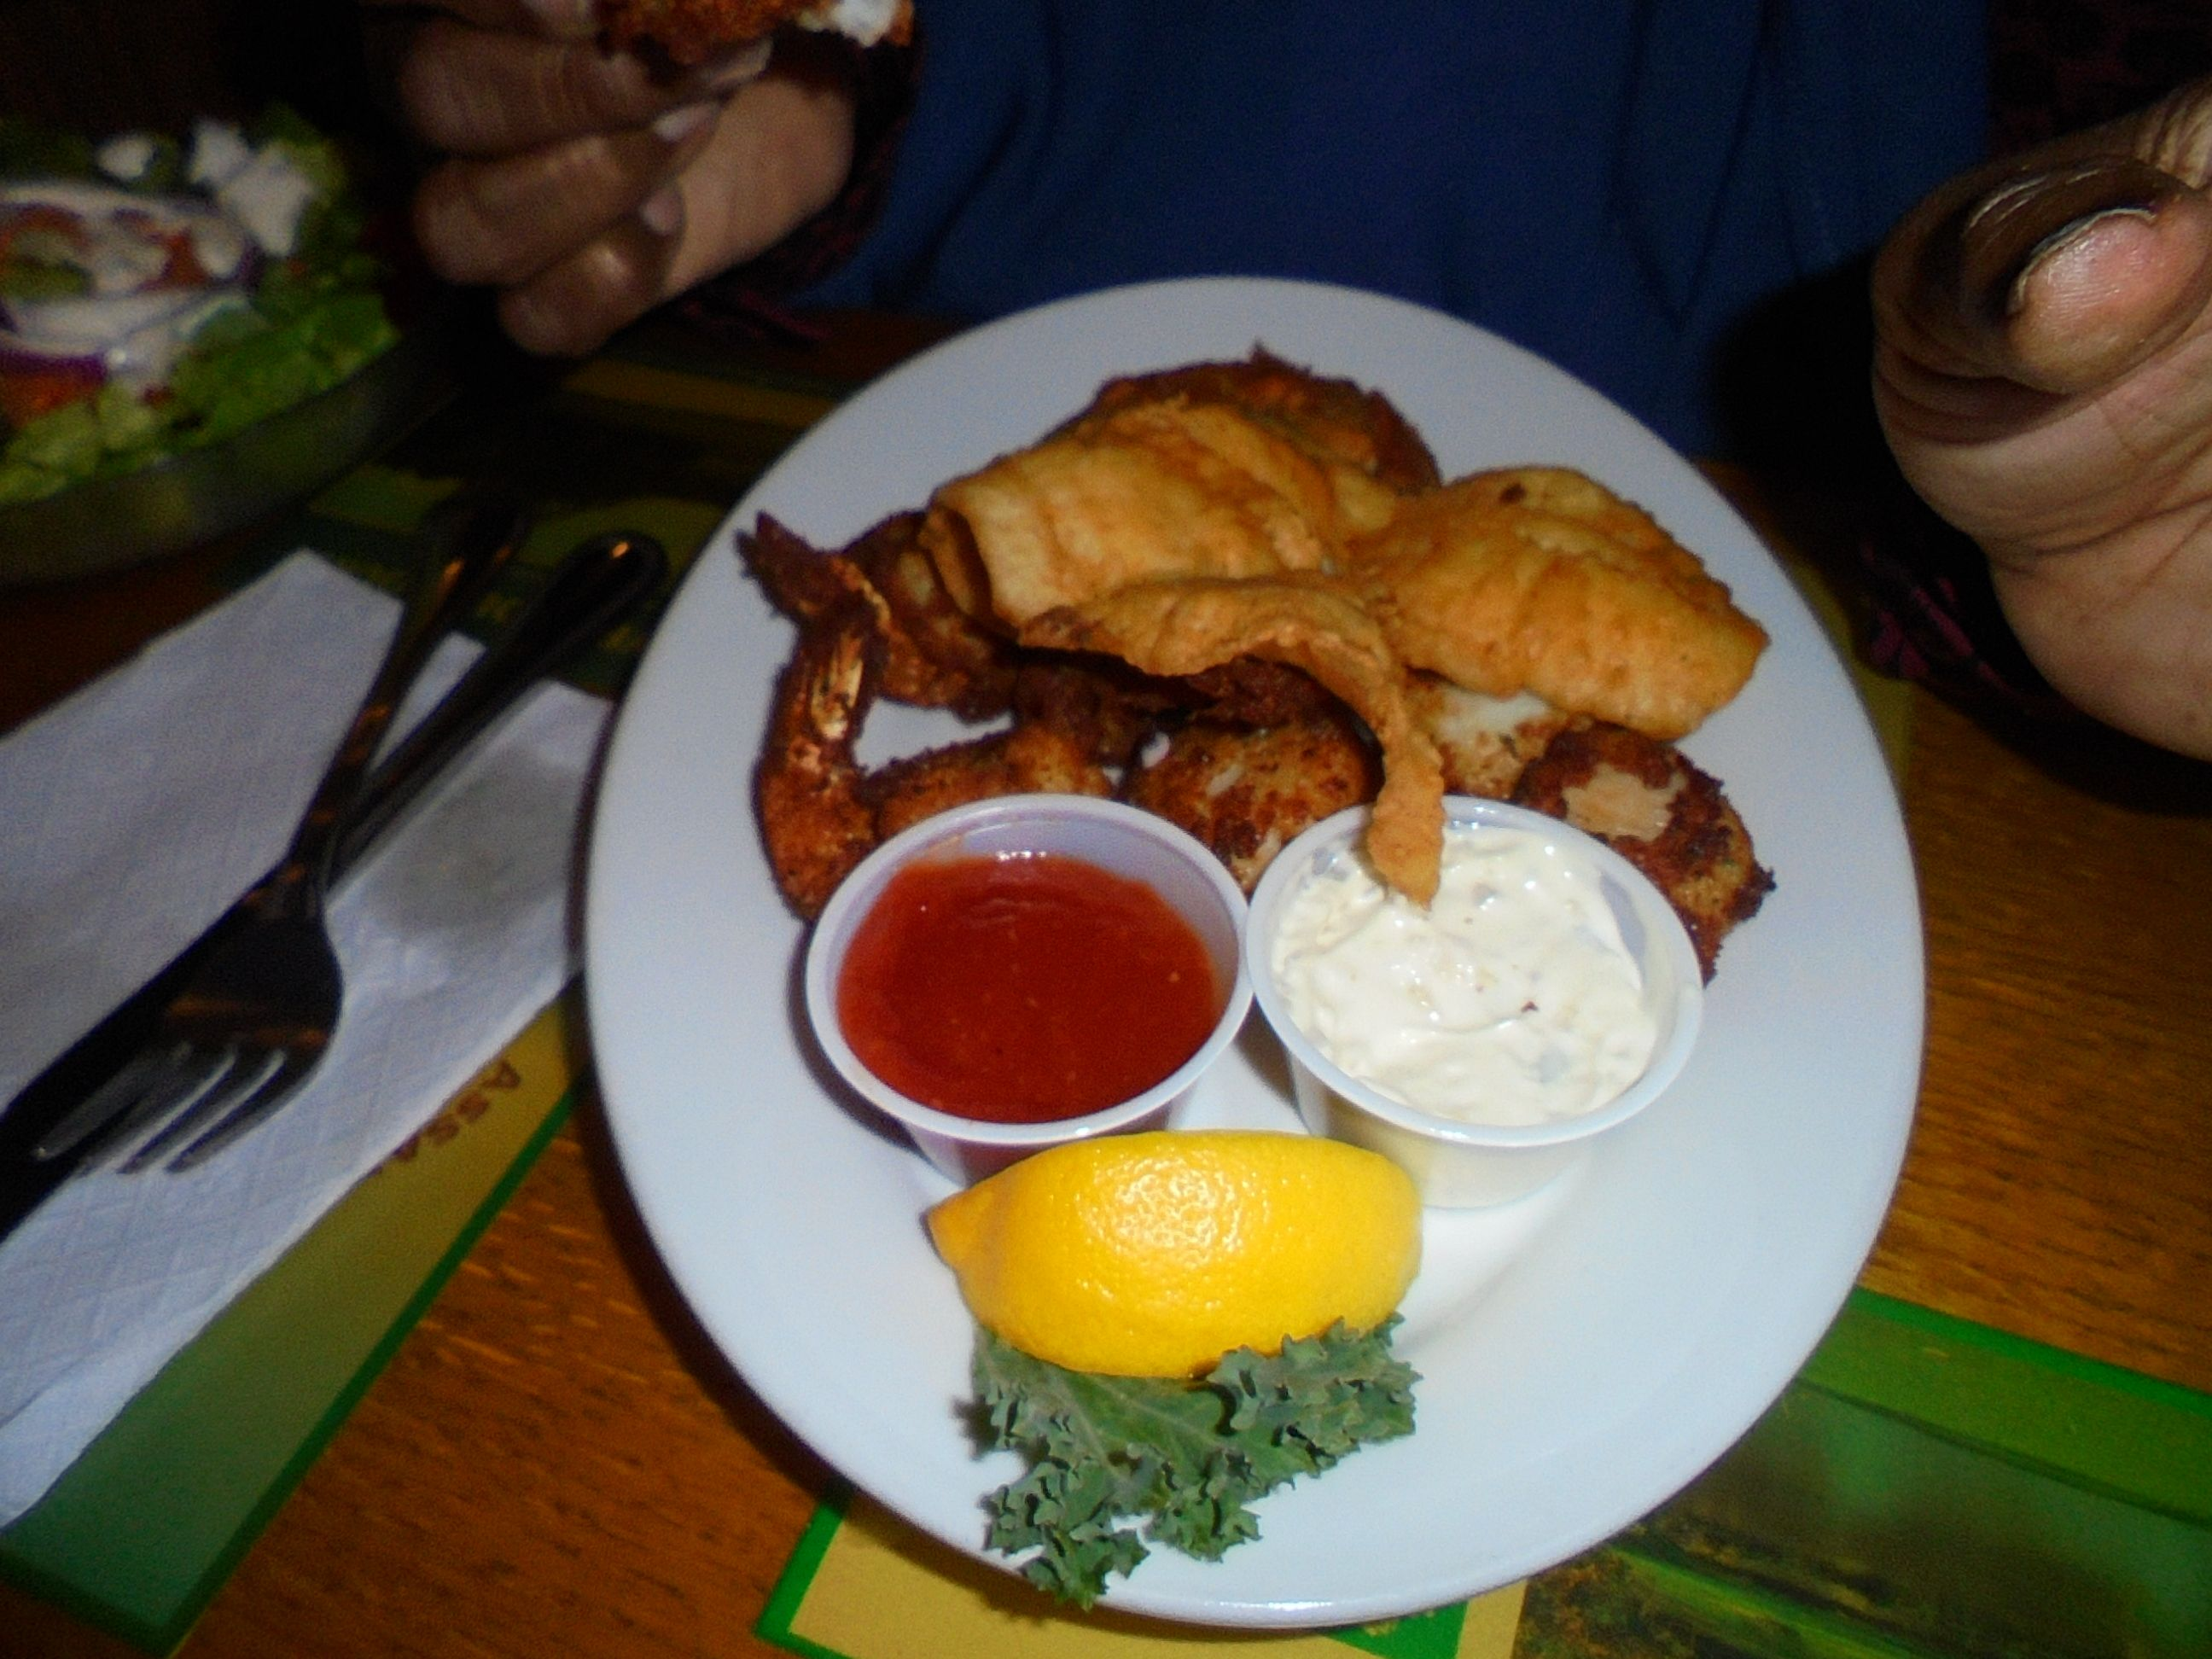 #FrontandCenter #version of #friedseafood #meal @ #JakesRehobothDelaware #RehobothBeach - http://www.drewrynewsnetwork.com